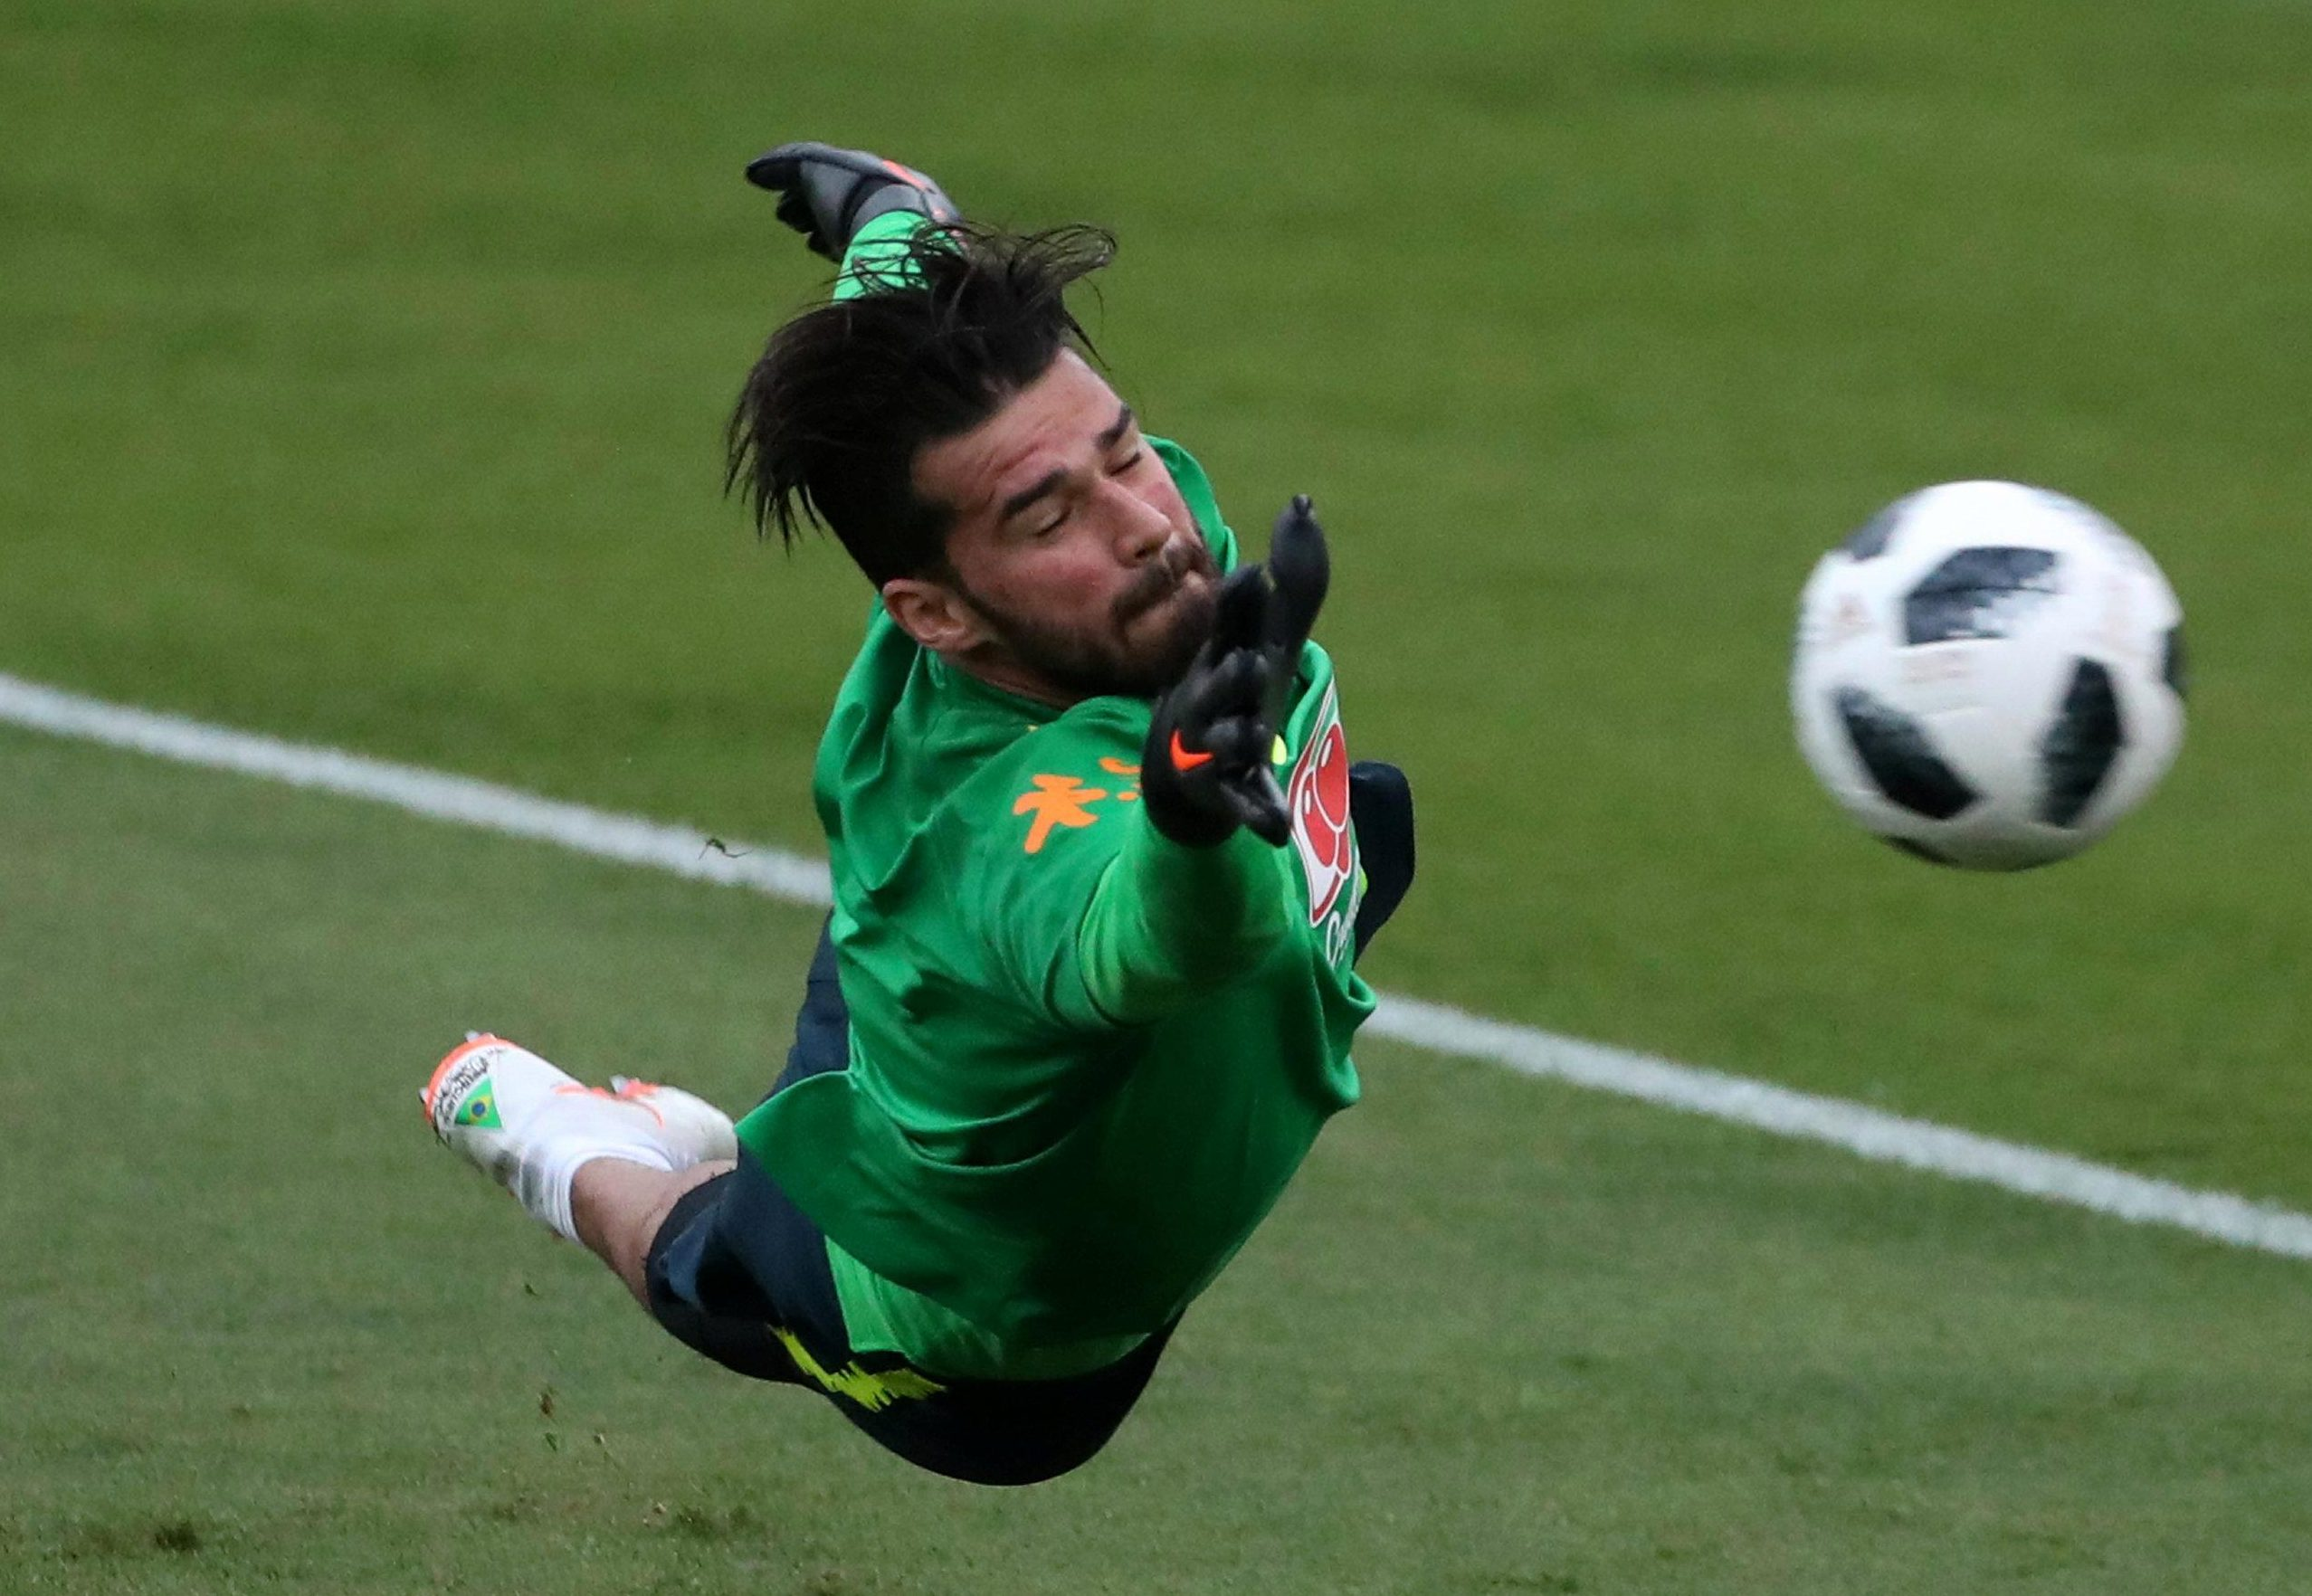 Liverpool are reportedly keen to bring in a new keeper, with Brazil No 1 Alisson Becker a logical target